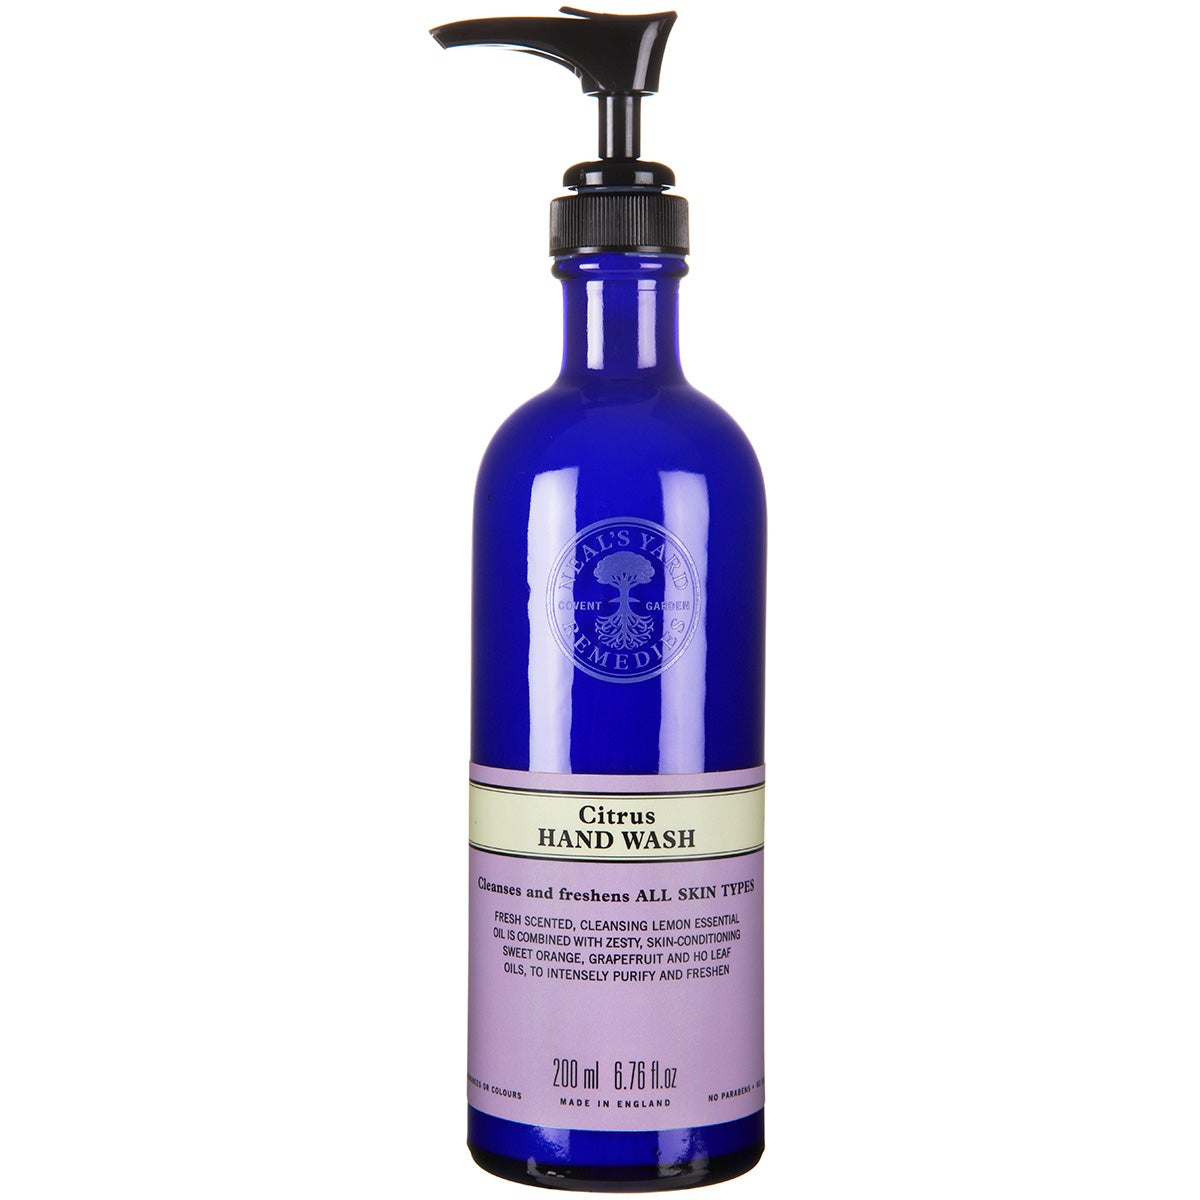 Neal's Yard Remedies Citrus Hand Wash